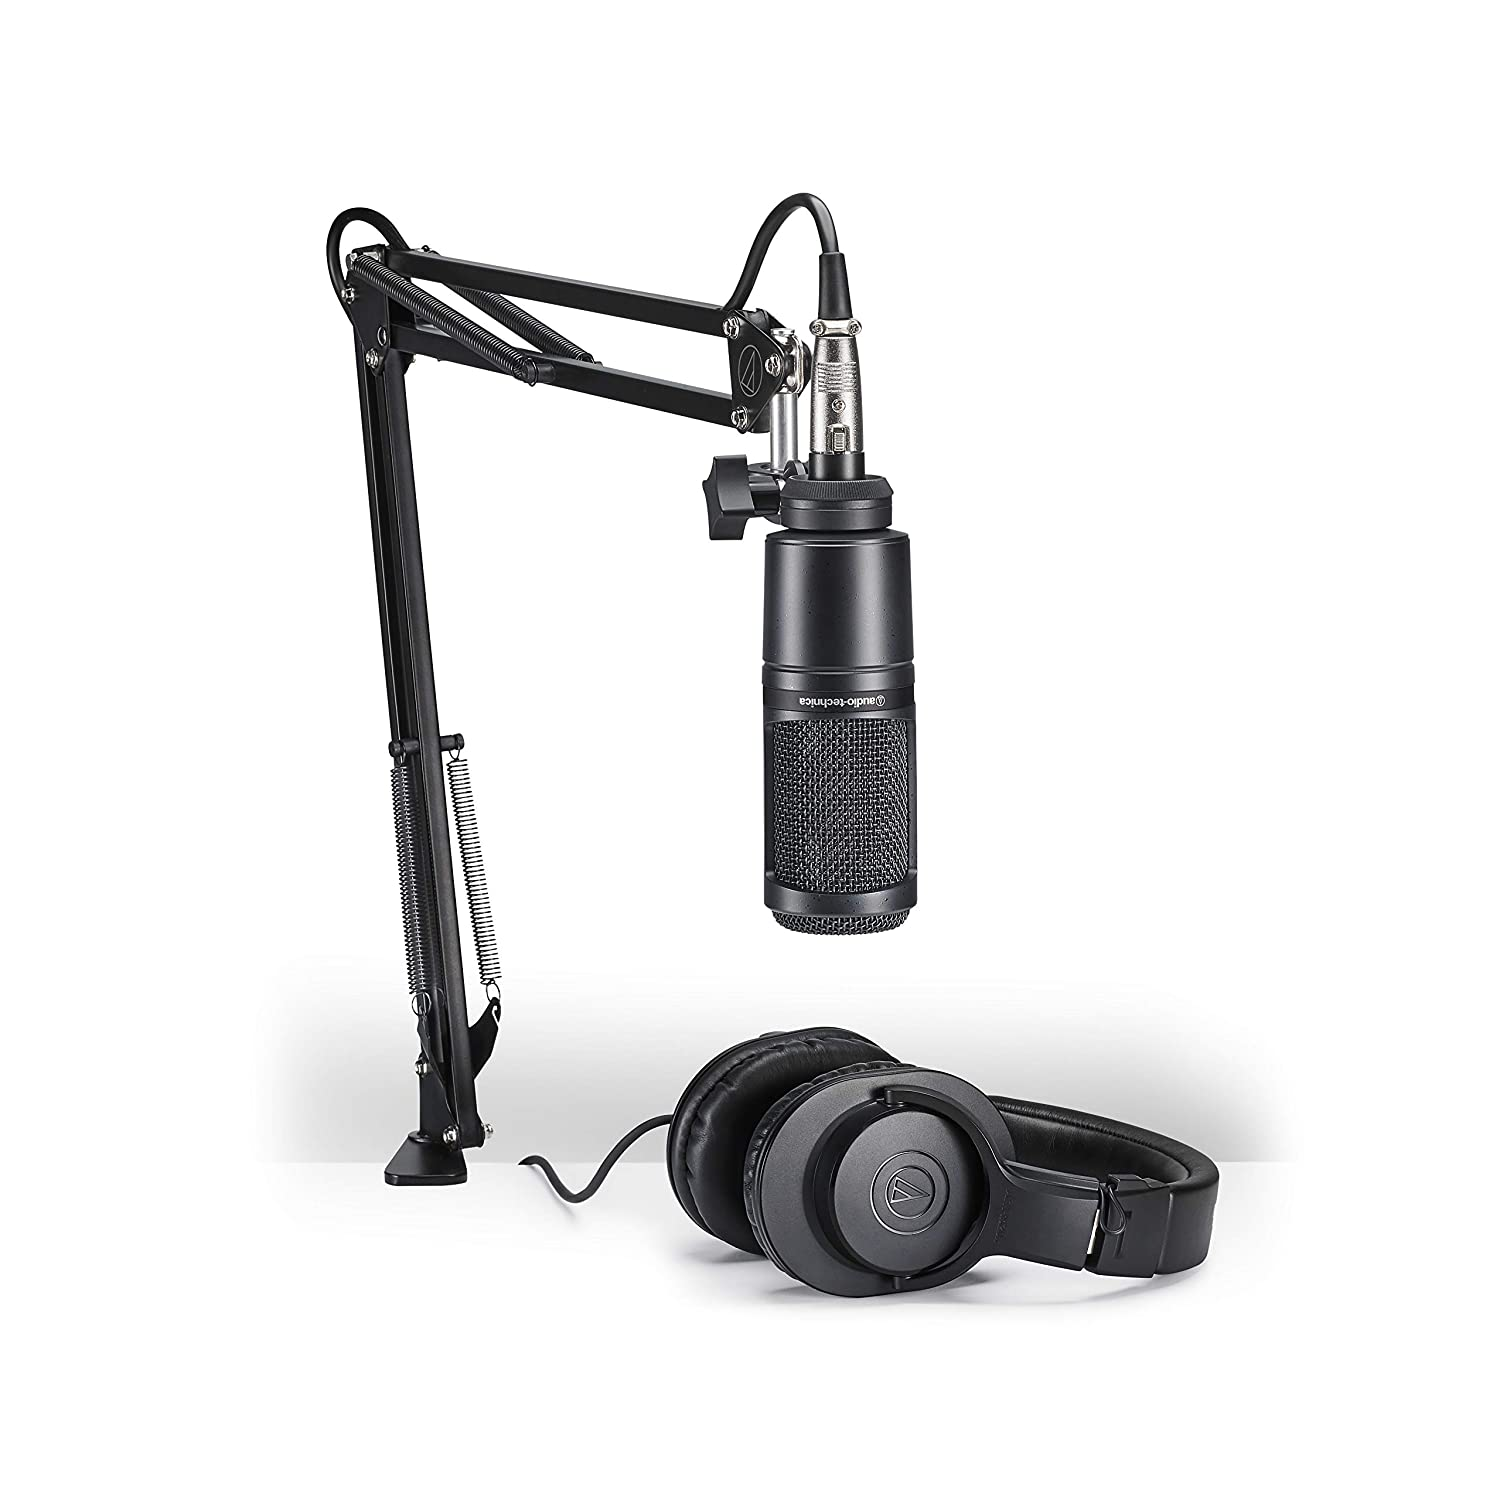 Pack de microfono Audio-Technica AT2020PK para streaming xmp